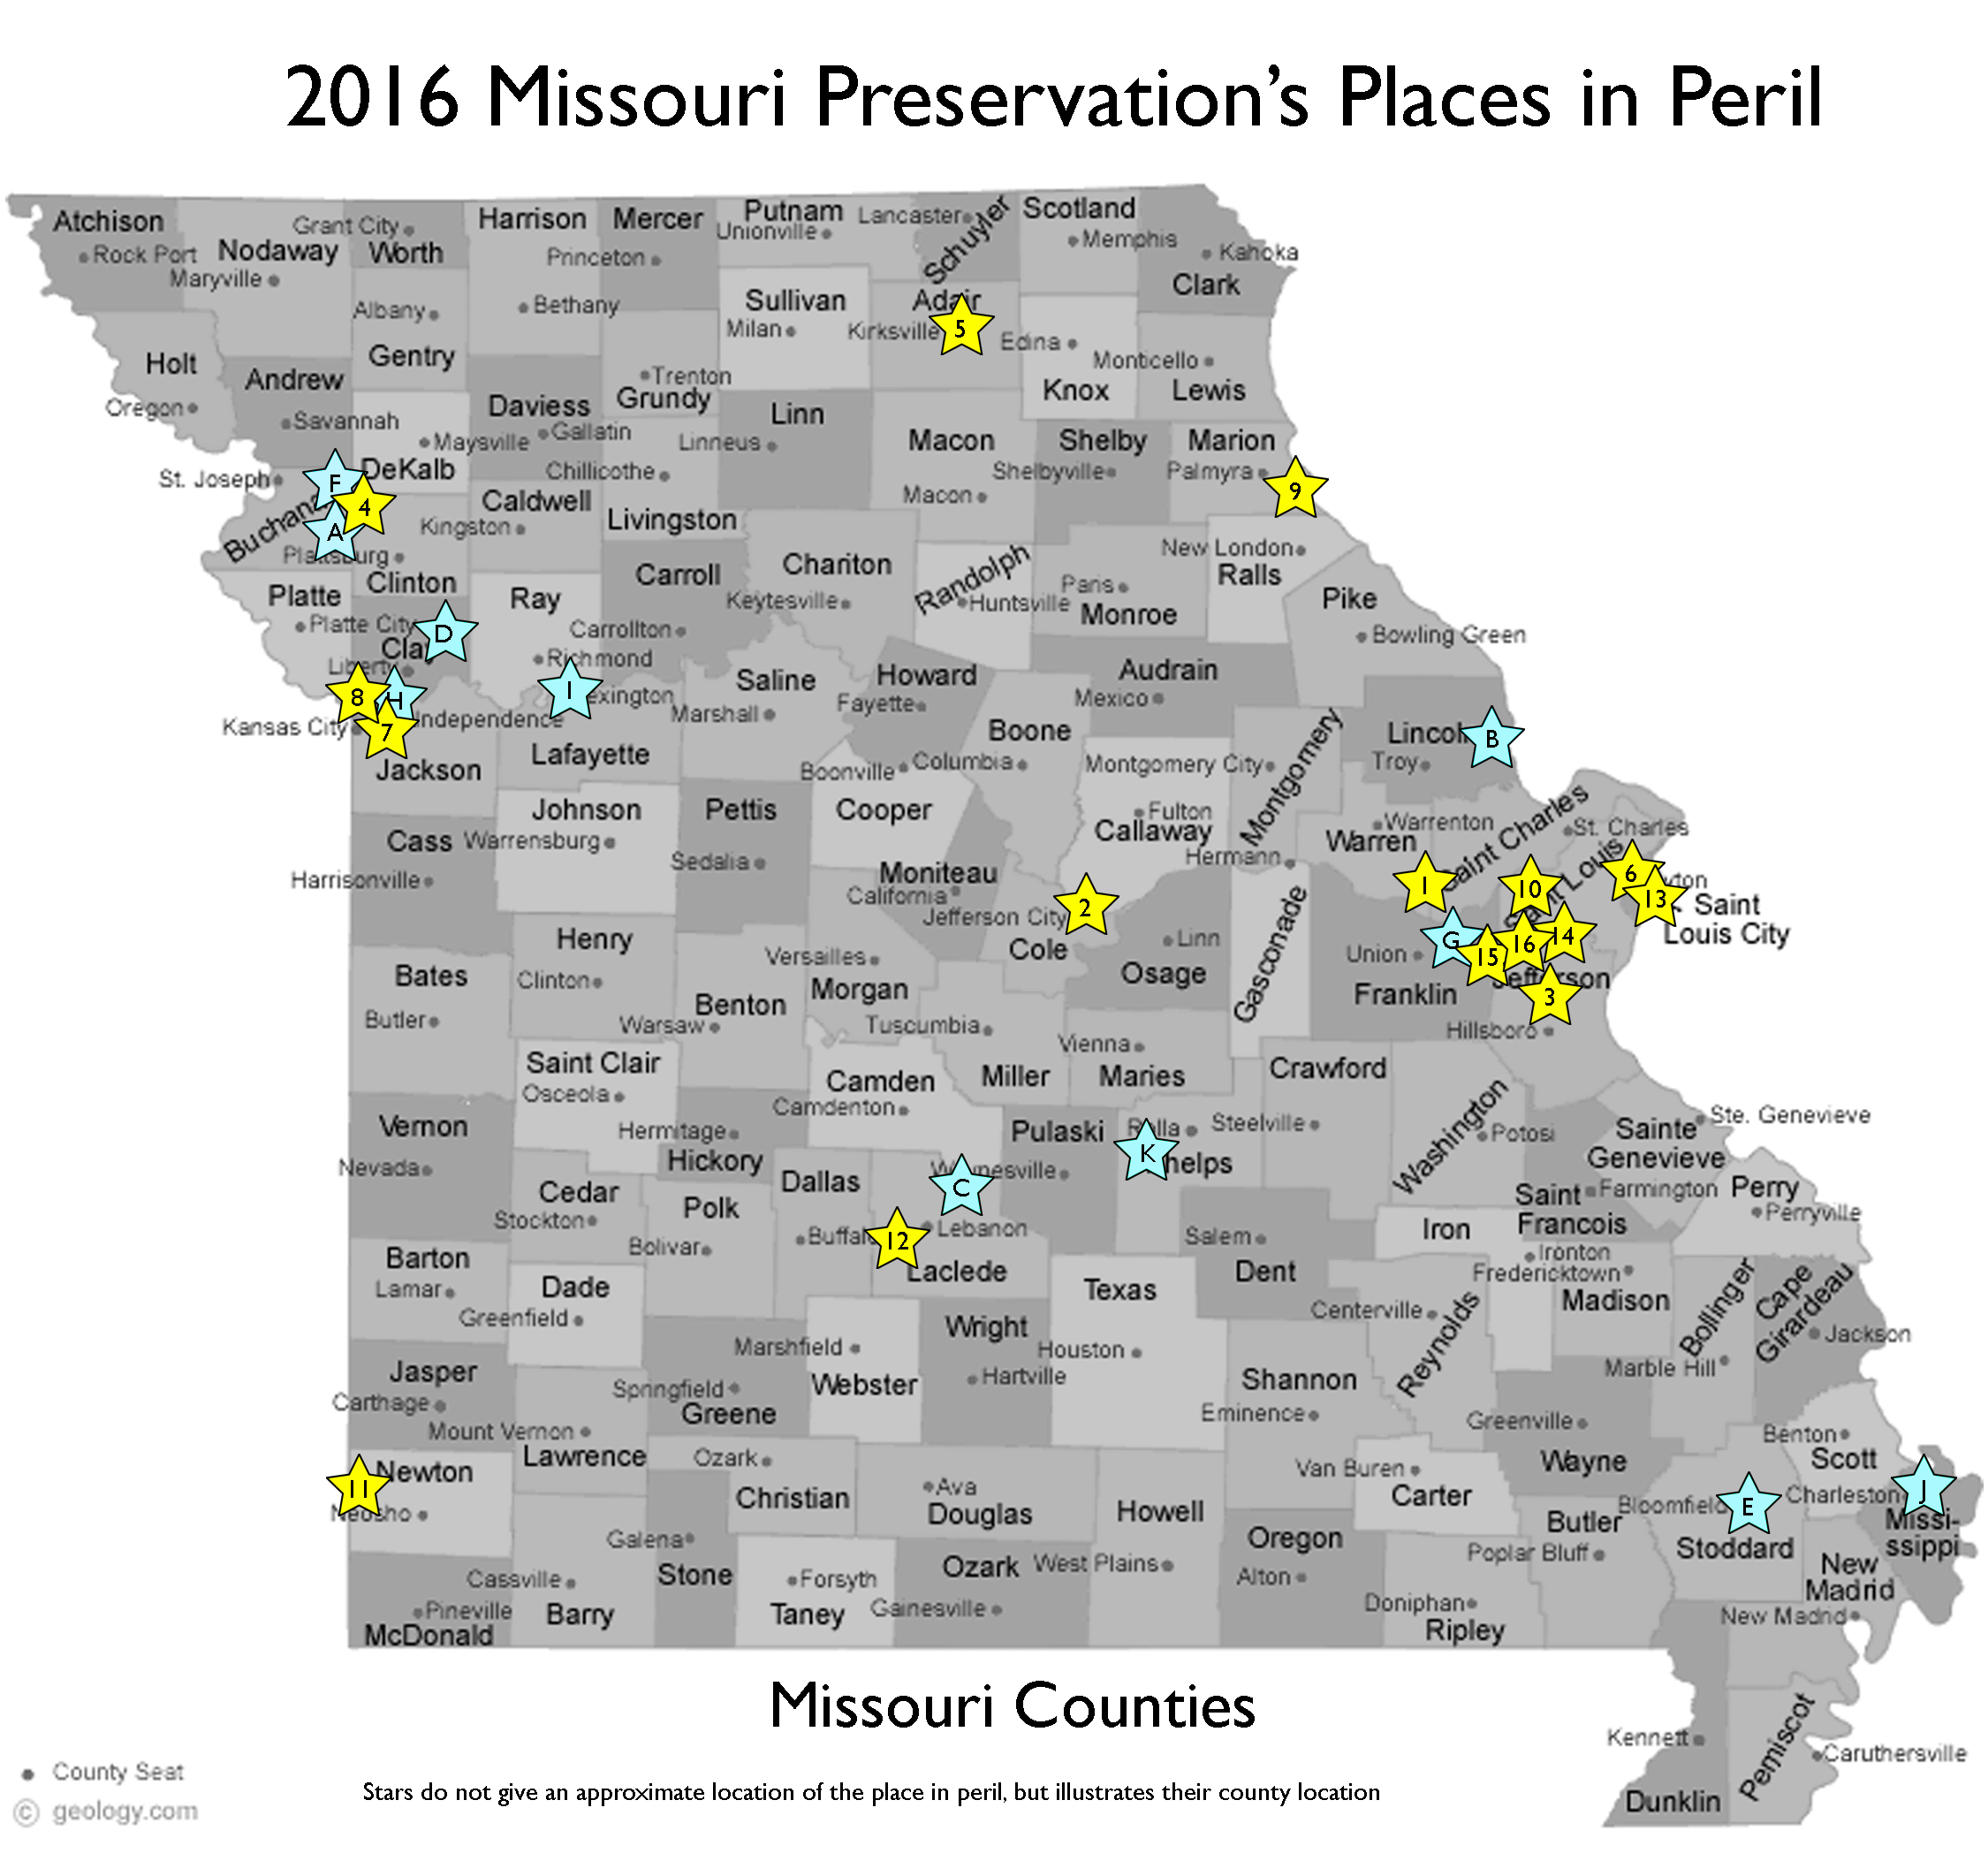 Places in Peril 2016 – The Missouri Alliance for Historic Preservation